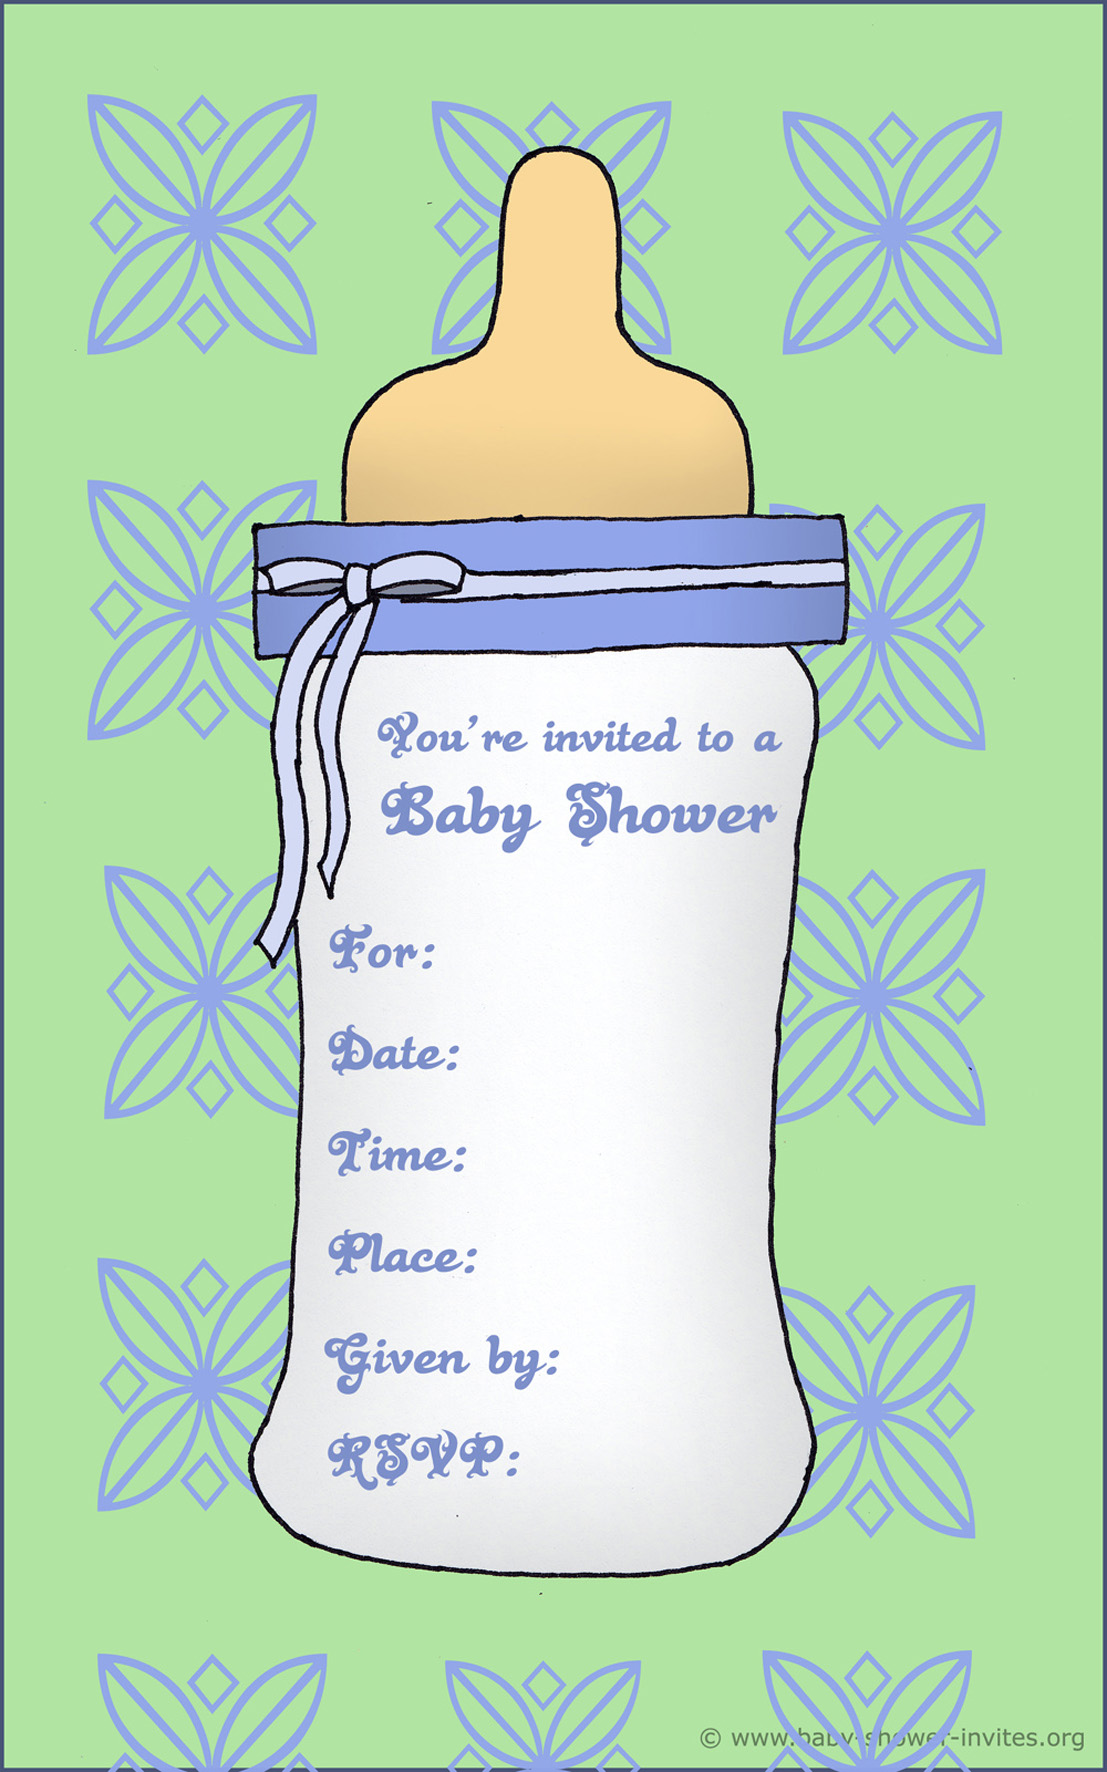 free baby shower invitation templates for boys - Roho.4senses.co